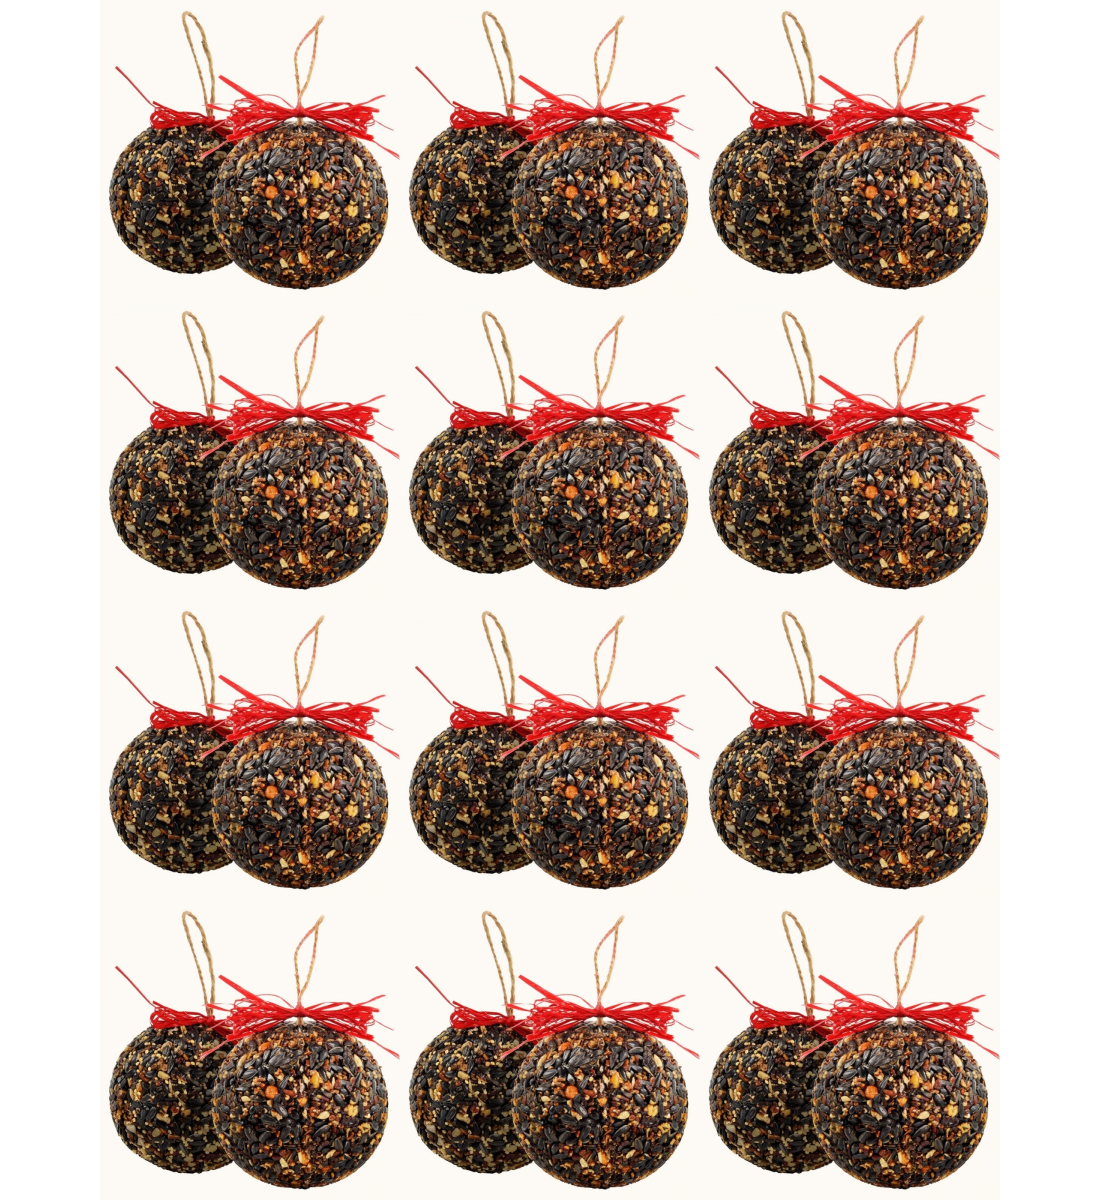 Seed and Nut Ornament Balls 15 oz. Set of 24